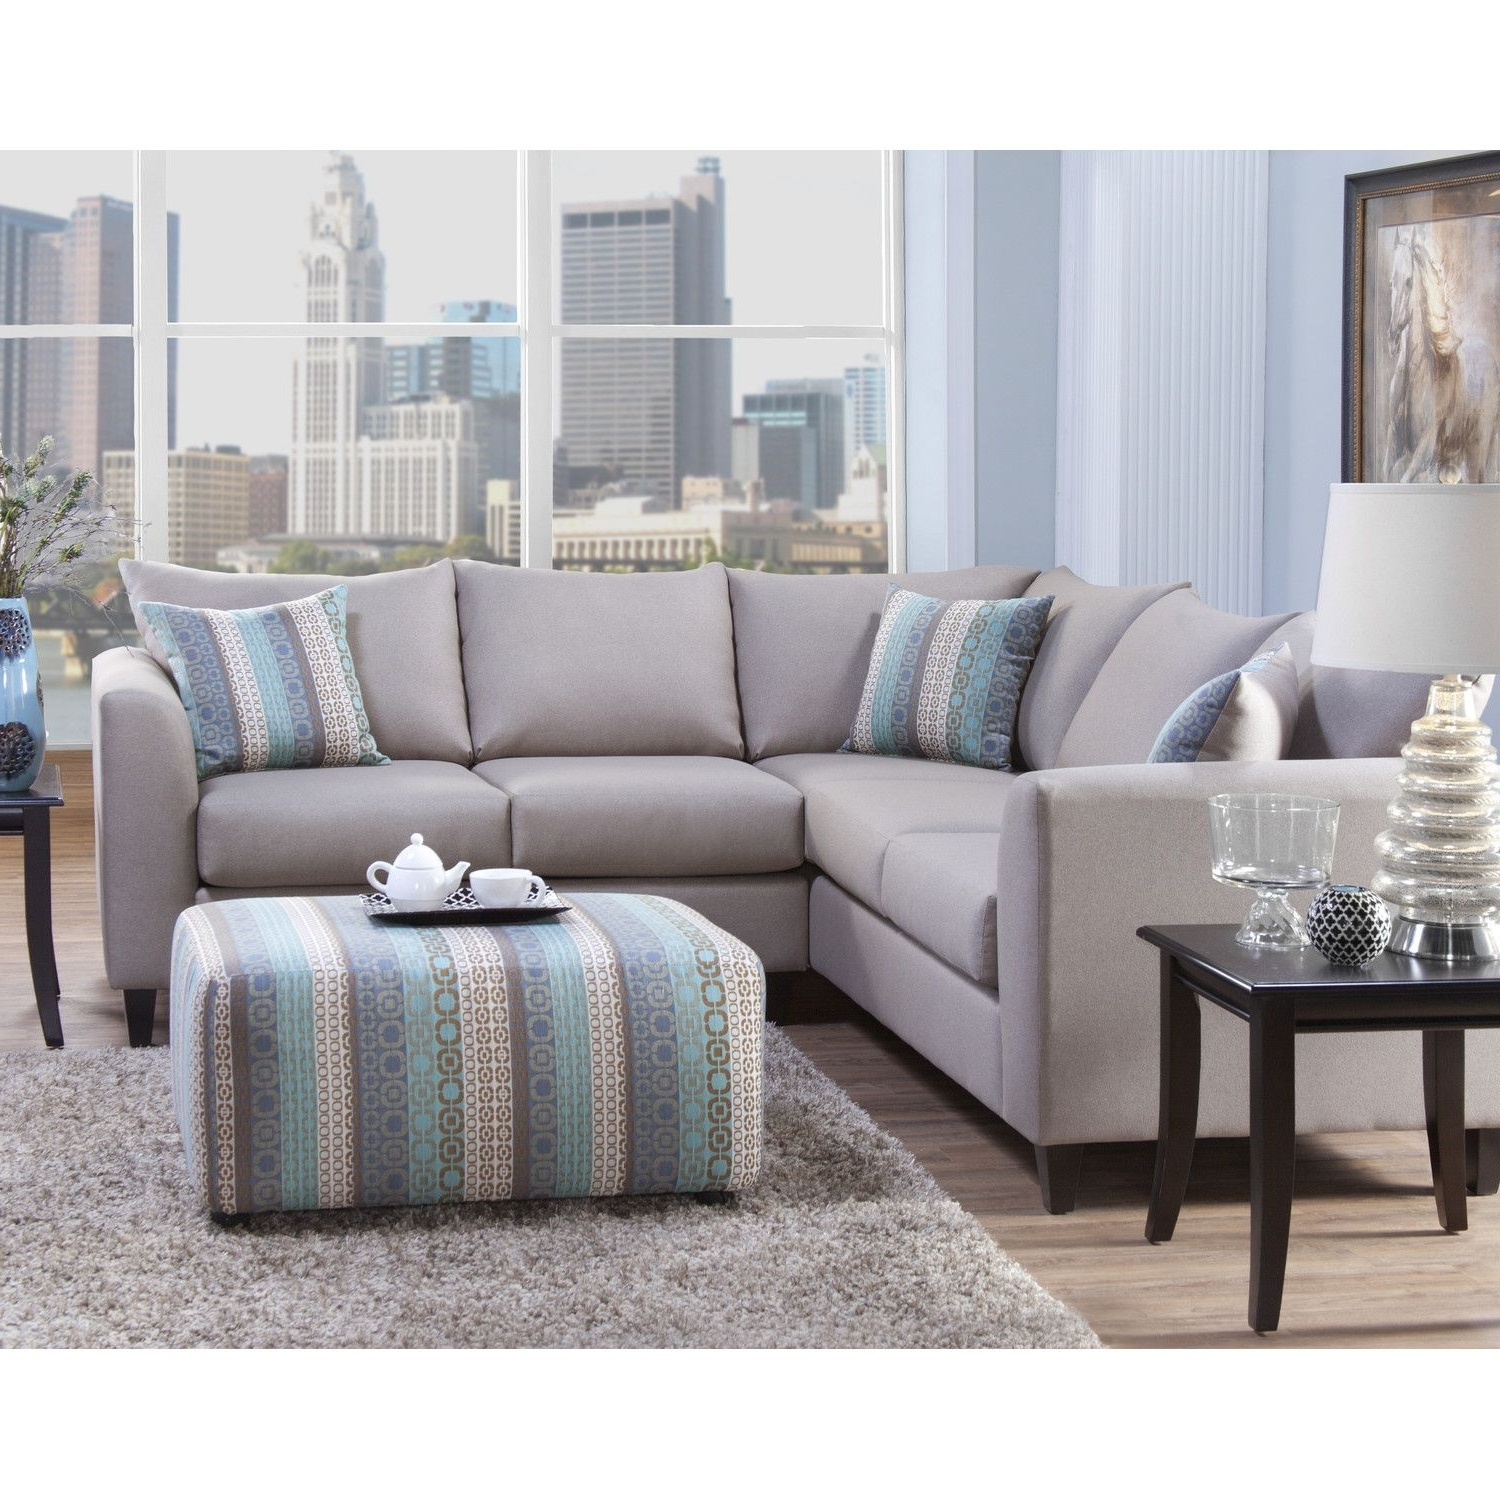 Free Shipping! Shop Wayfair For Serta Upholstery Sectional – Great Regarding Well Known Ontario Canada Sectional Sofas (View 5 of 15)